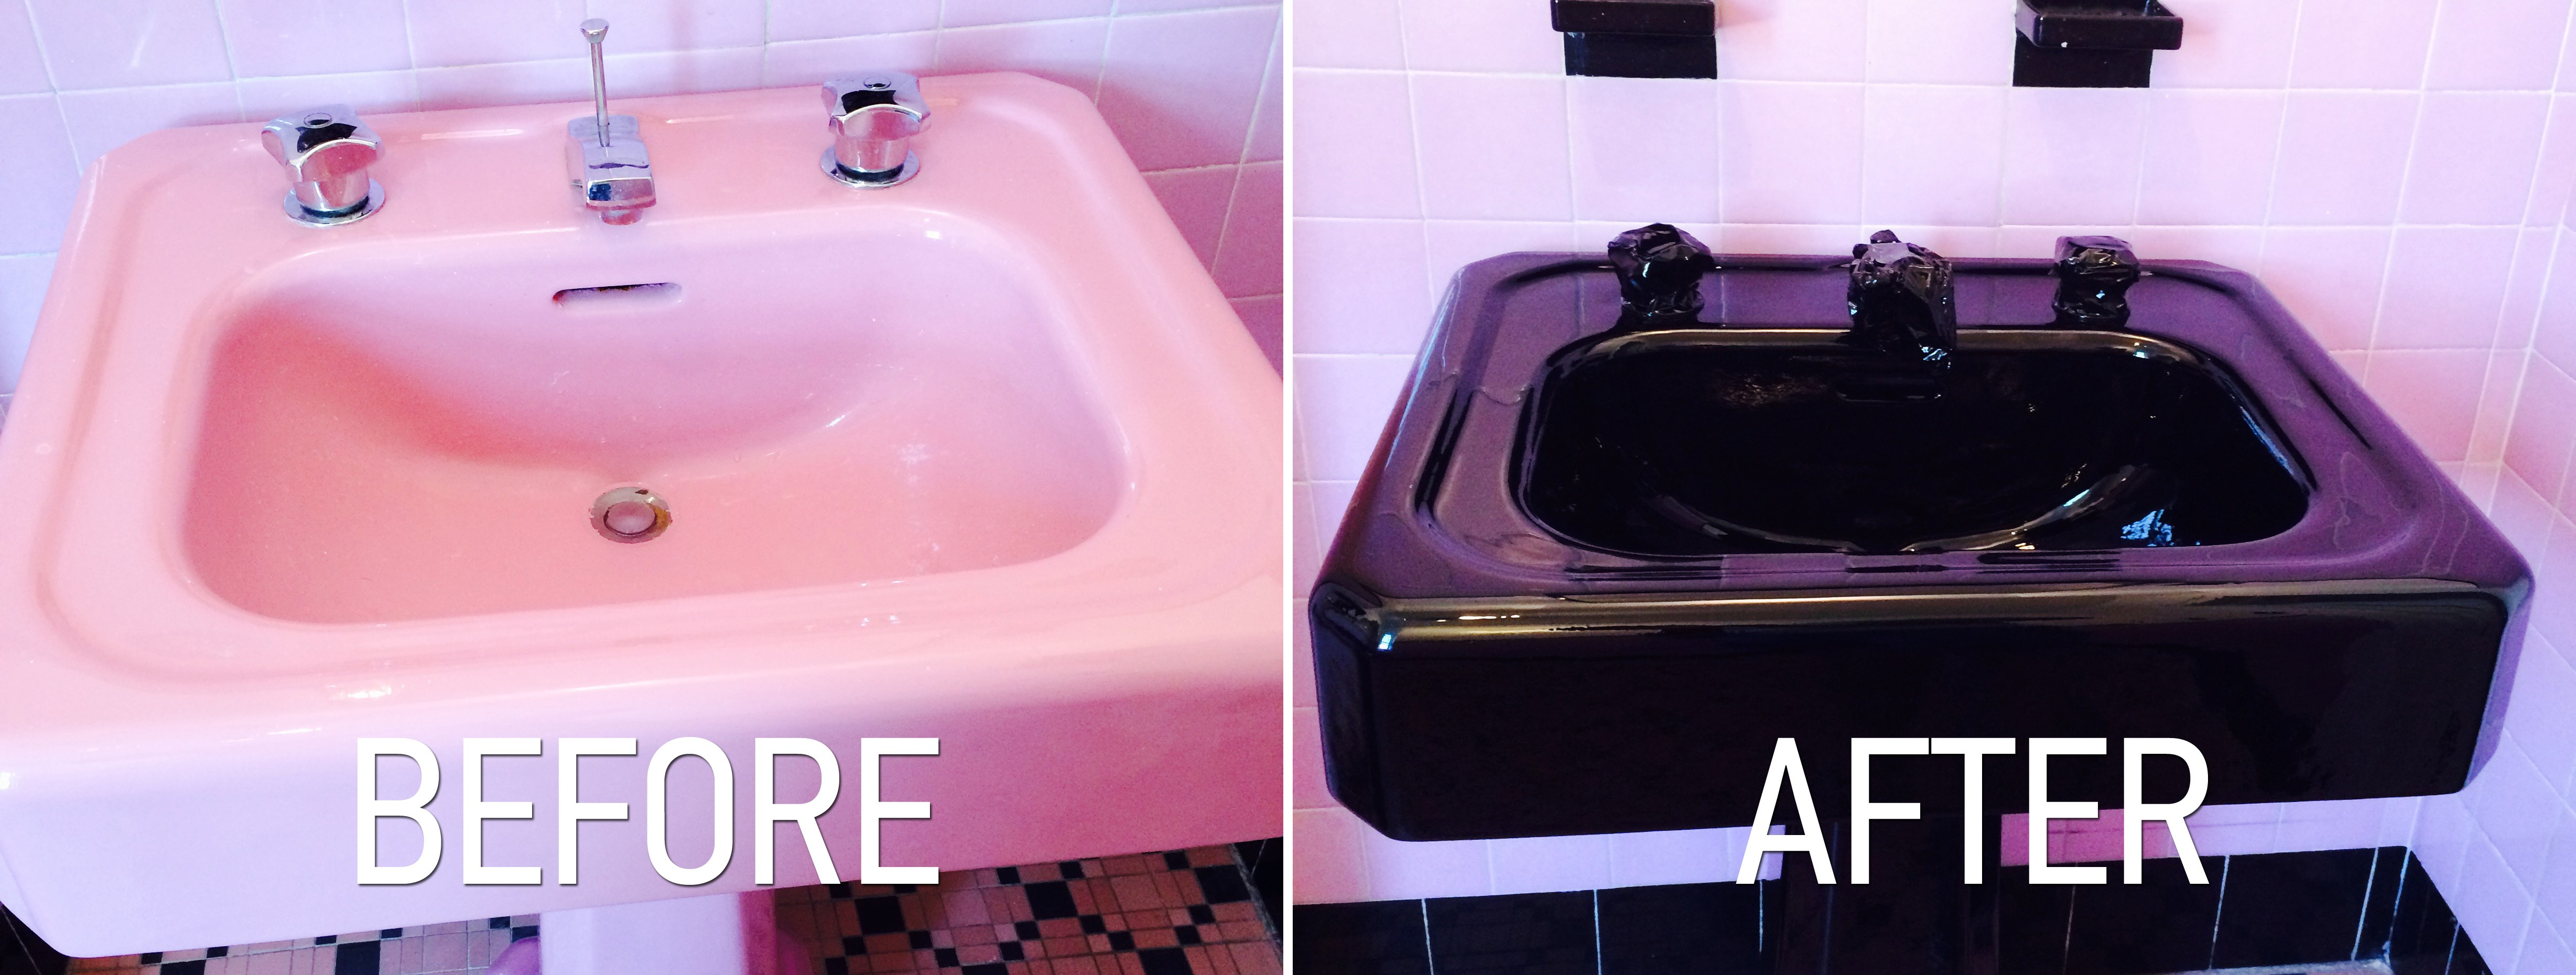 Sink Reglazing Services In Brooklyn The Bronx Ny